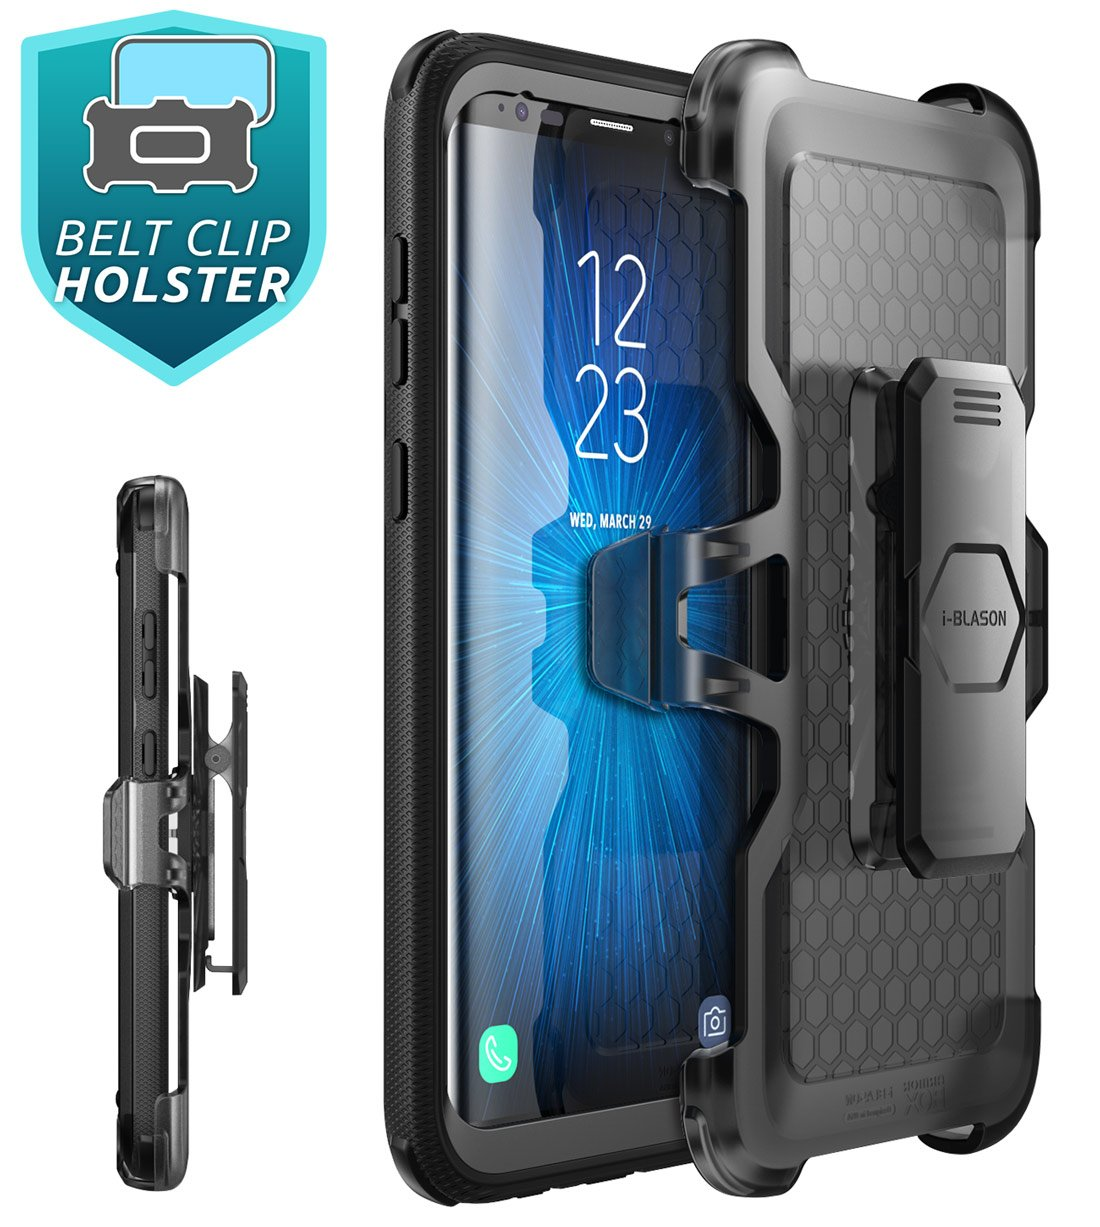 Galaxy S9+ Plus Case, i-Blason [Armorbox V2.0] [Full body] [Heavy Duty Protection ] [Kickstand] Shock Reduction/Bumper Case with Screen Protector for Samsung Galaxy S9+ Plus (2018 Release) (Black) by i-Blason (Image #5)